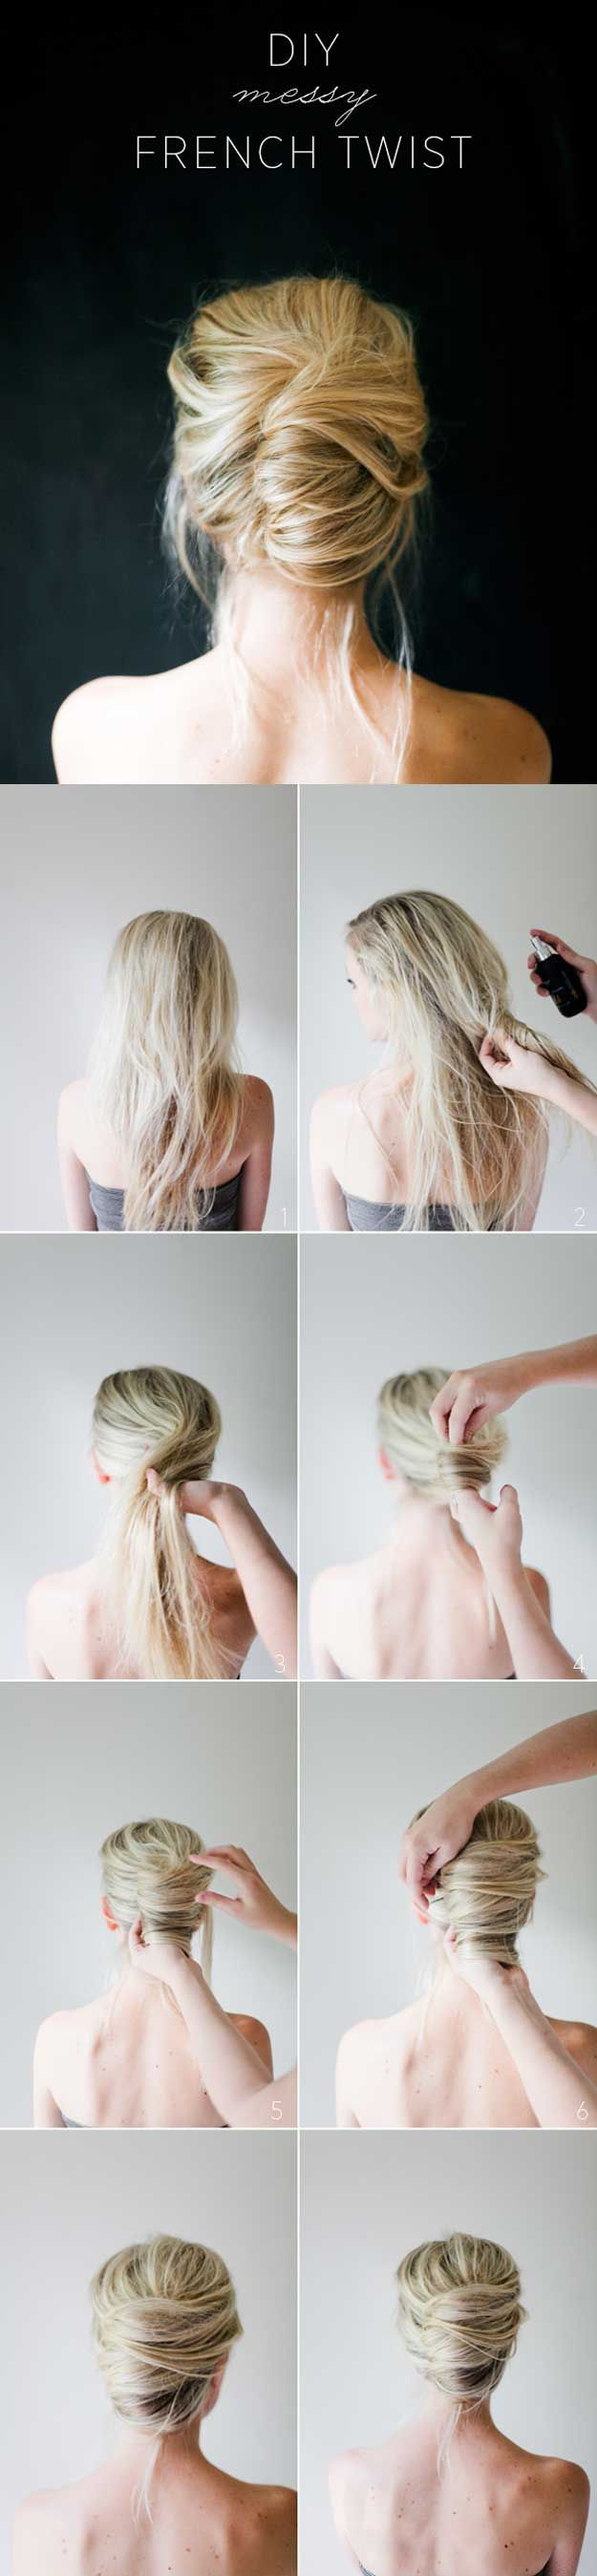 Best 5 Minute Hairstyles - Messy French Twist Tutorial - Quick And Easy Hairstyles and Haircuts For Long Hair, That Are Super Simple and Great For Busy Mornings Or For School. Braids, Undo's, Ponytail Looks And Hair Styles For Short Hair, Medium Length Ha (knot bun medium lengths)